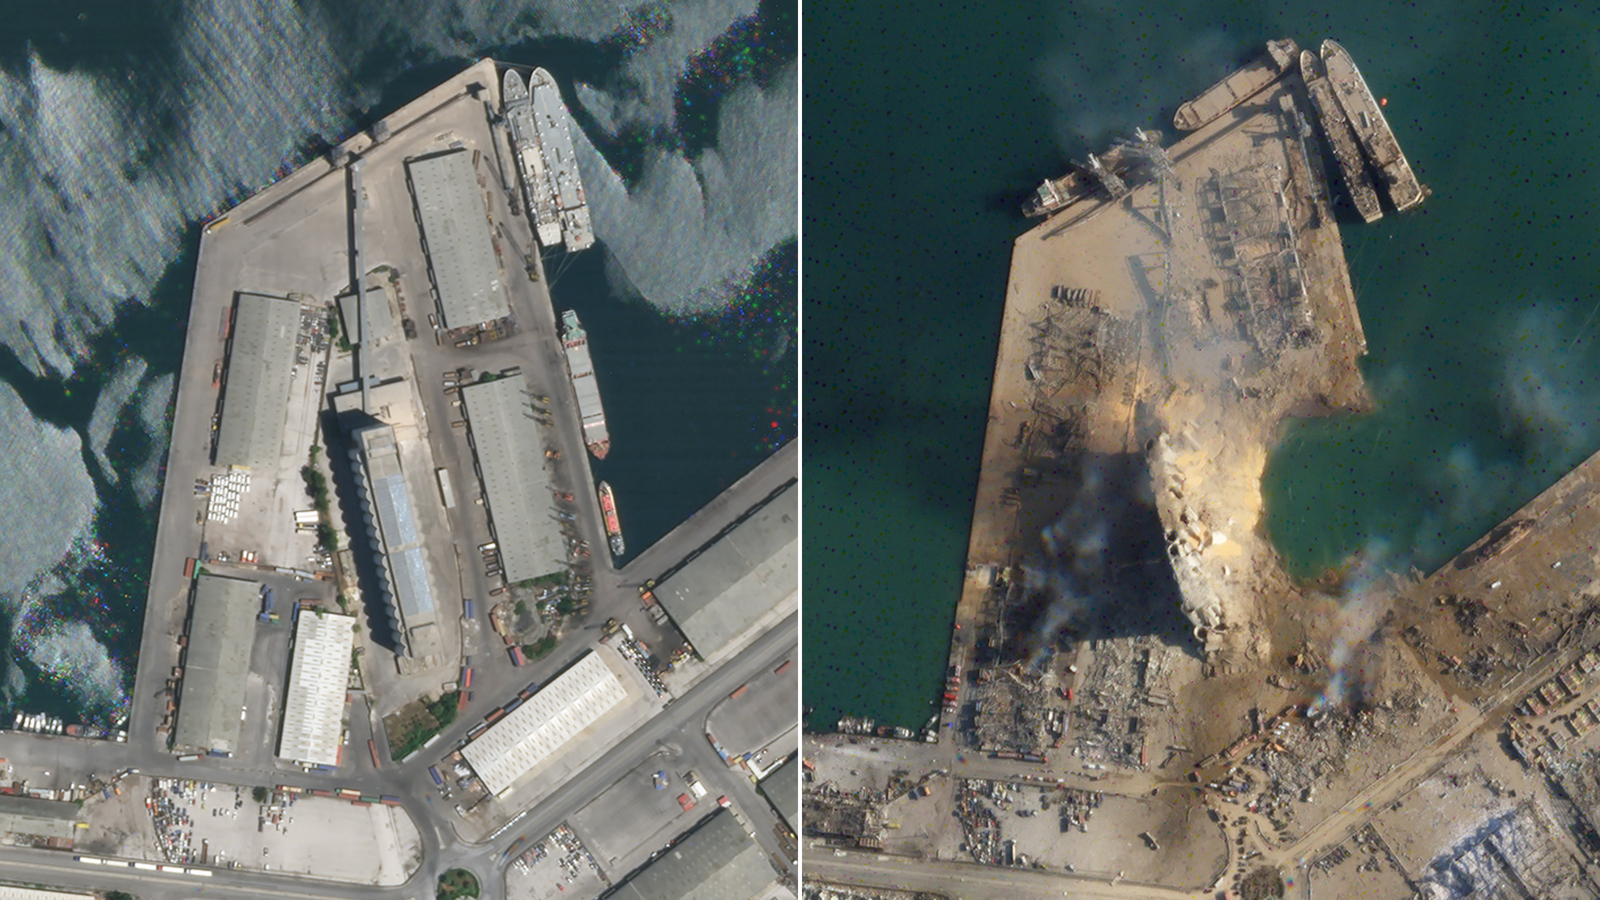 The port before the explosion, left, and after, right. (Planet Labs, Inc.)